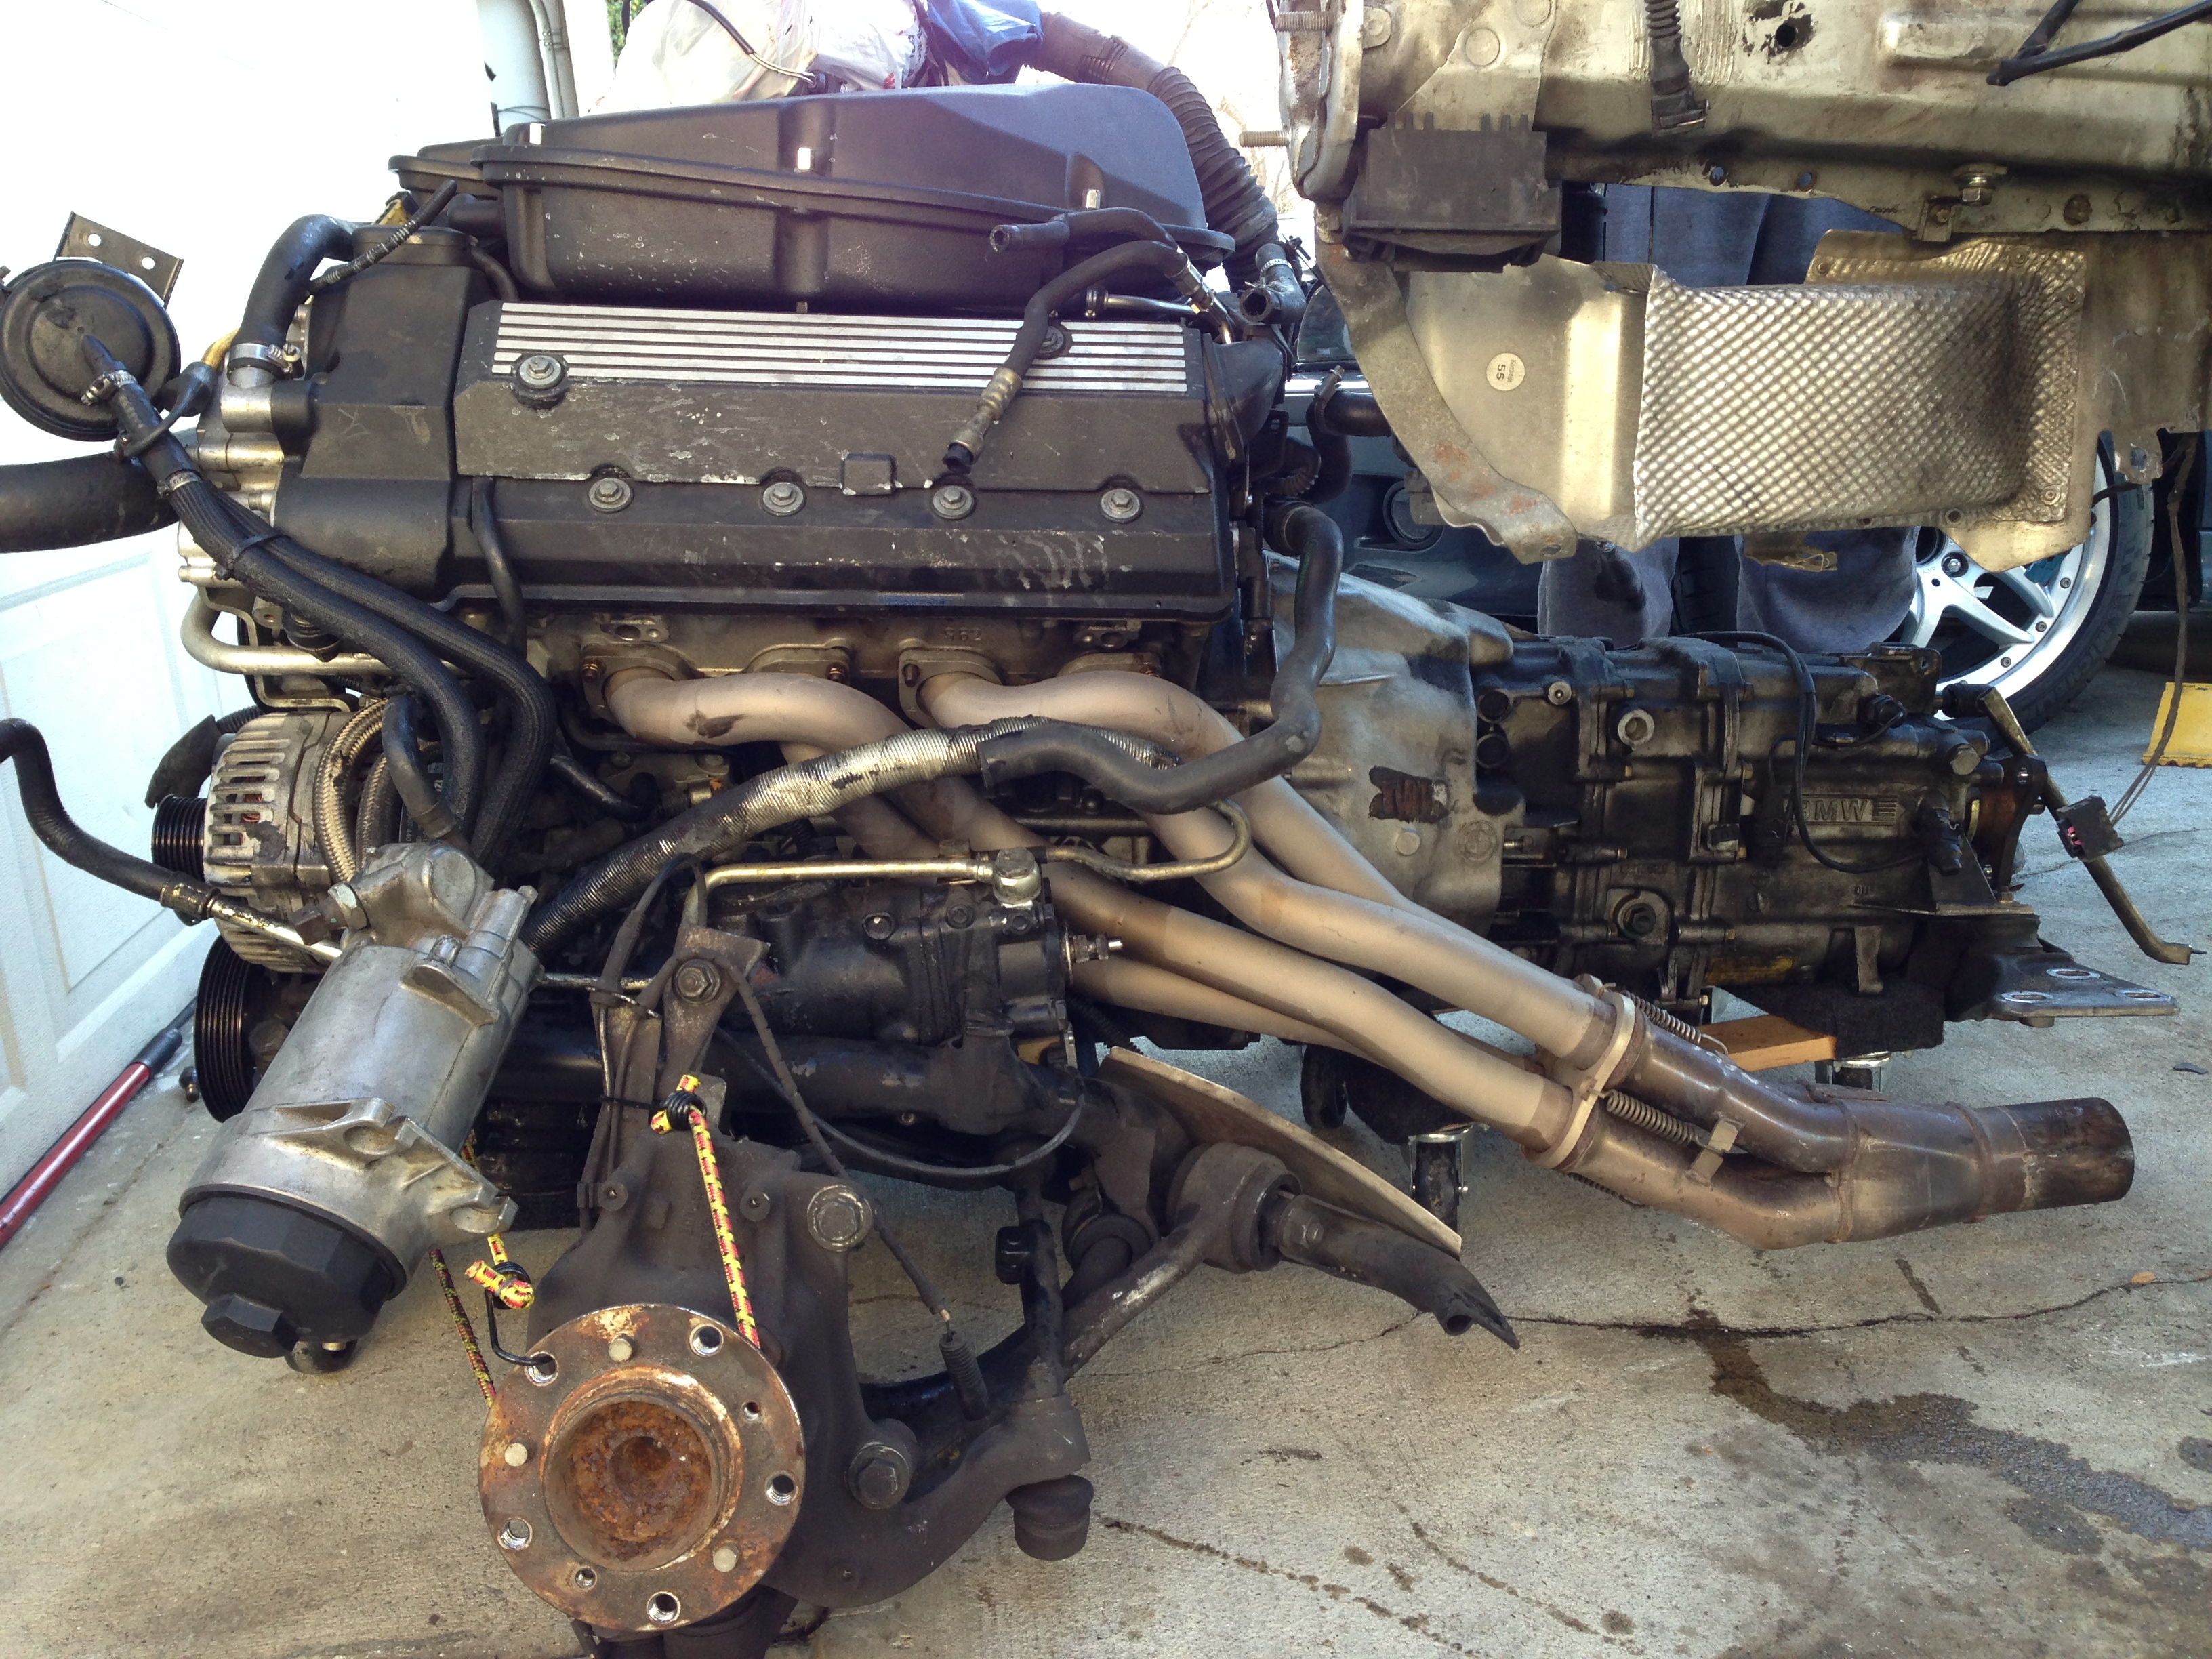 Jet Hot Coated Supersprint headers w/ connecting & cat delete pipes-img_1257.jpg